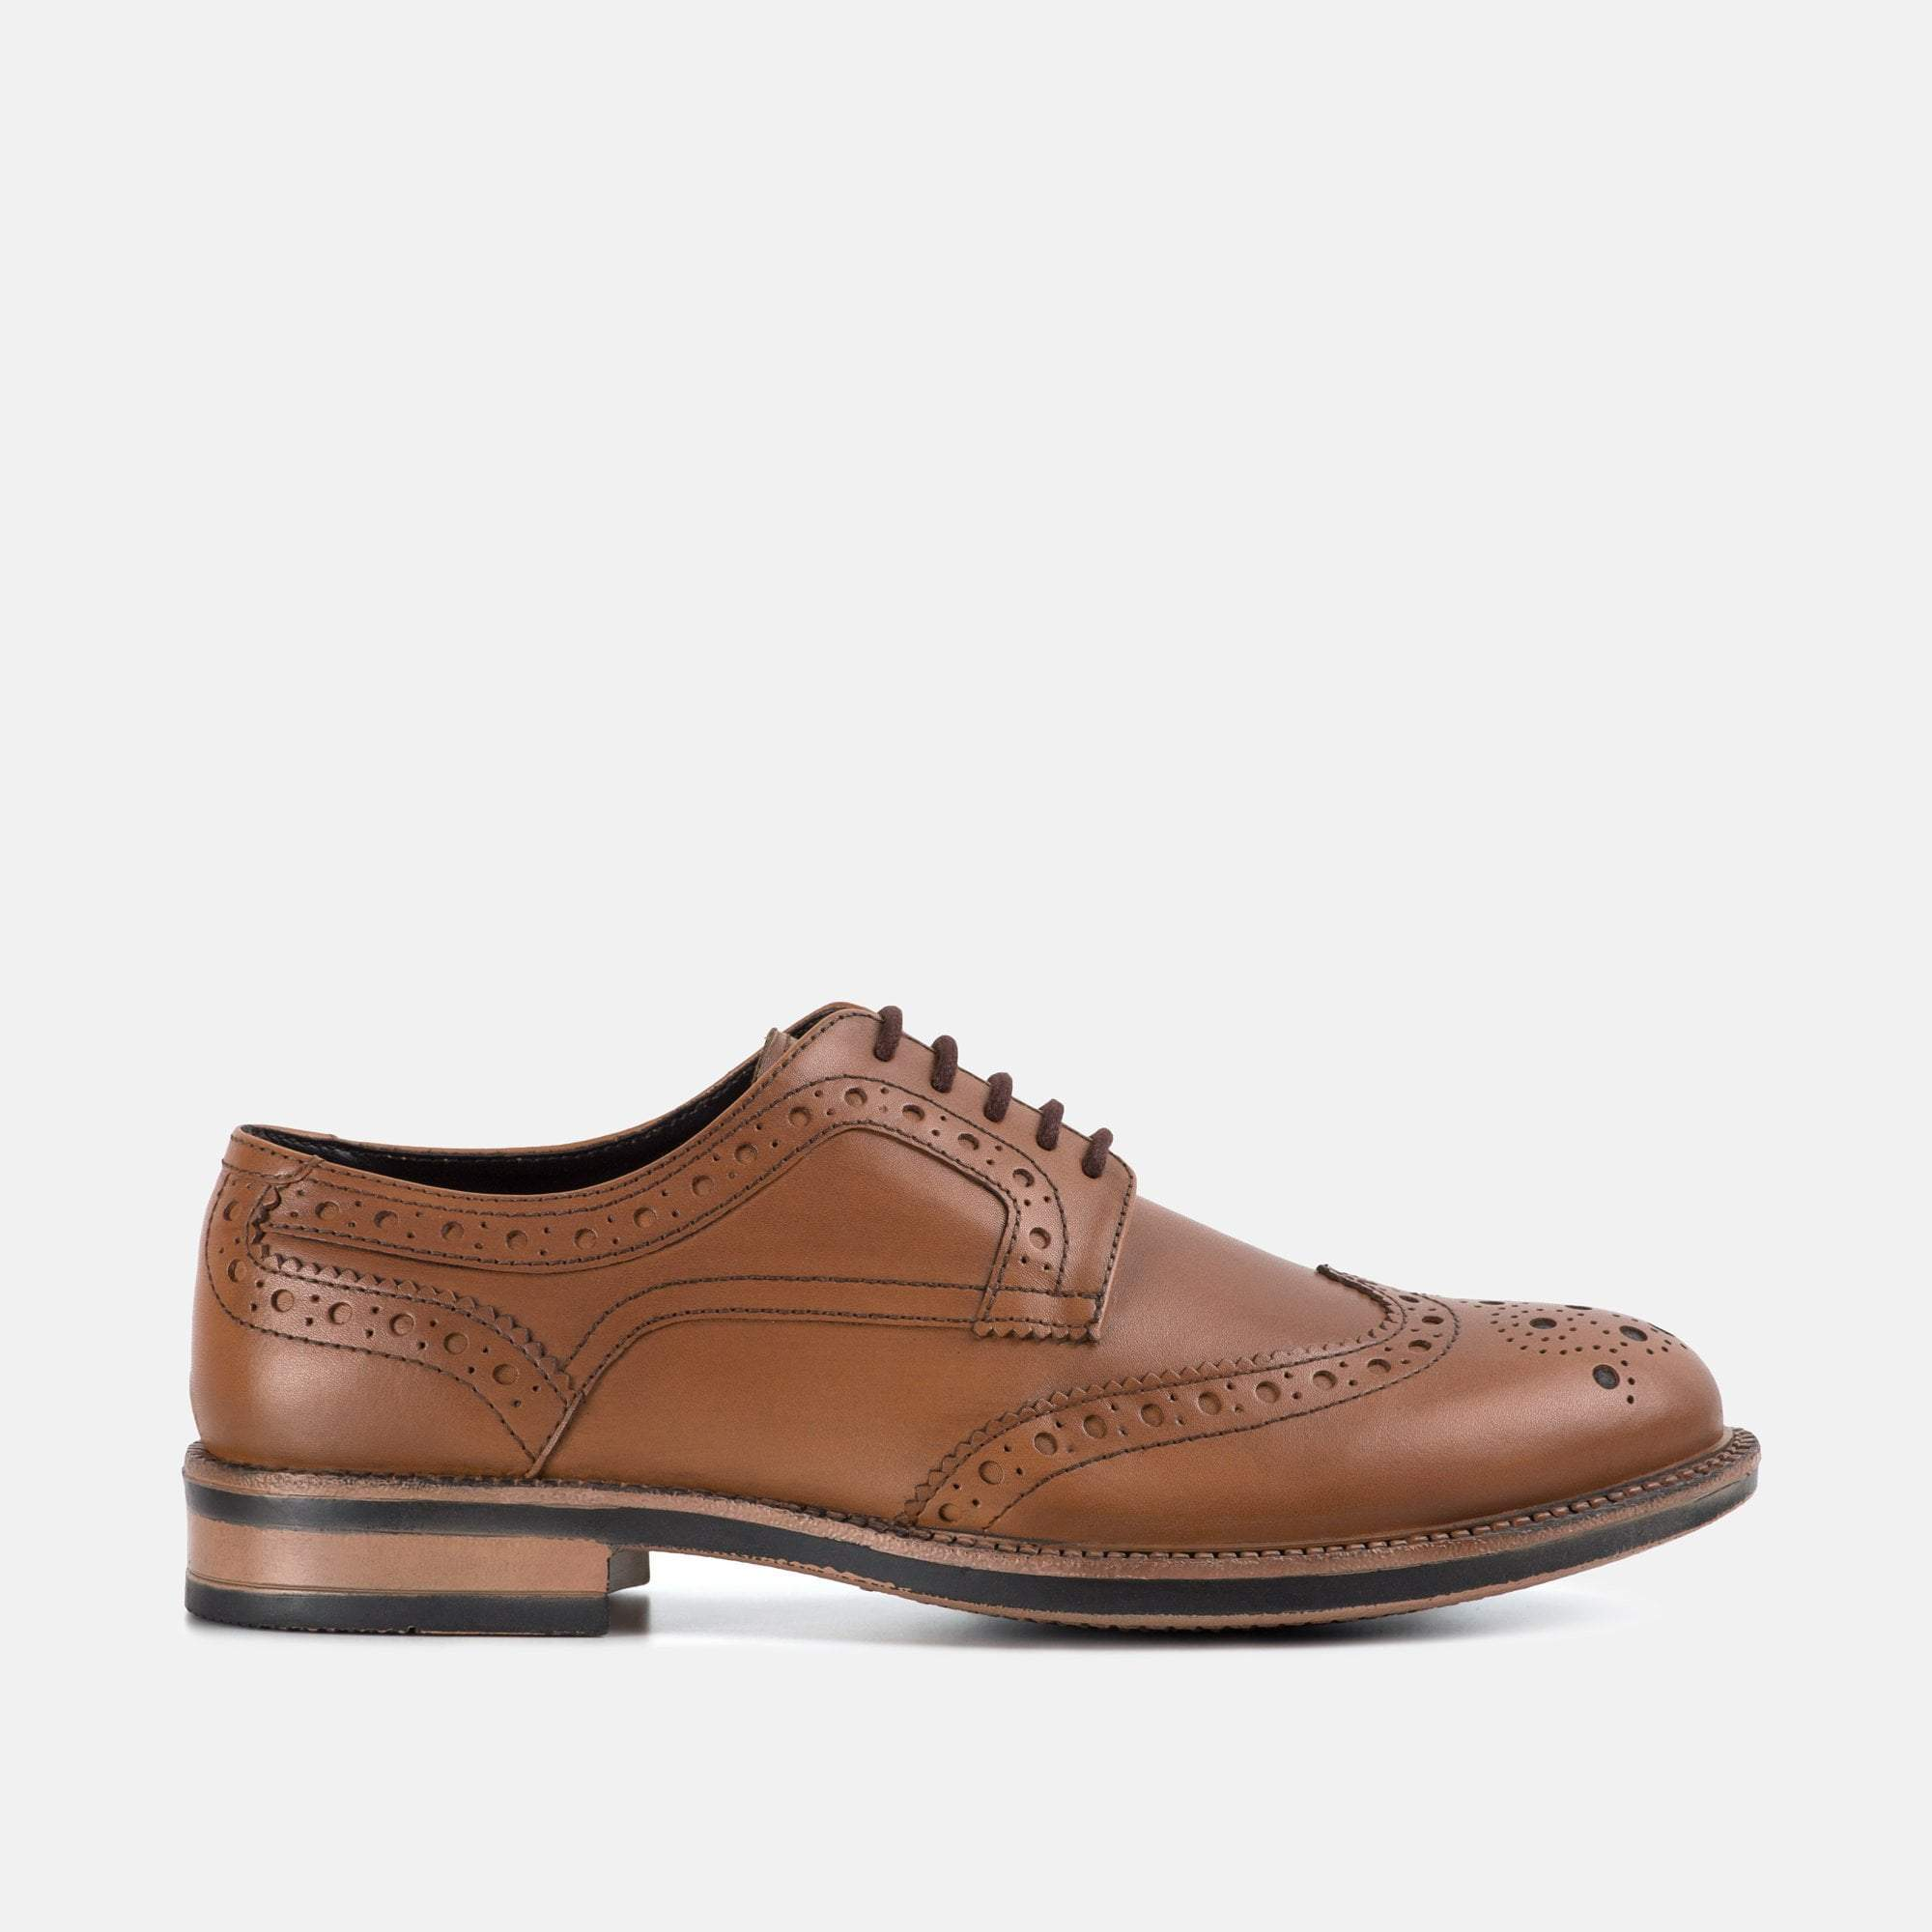 JOHNSON TAN - MEN'S DERBY BROGUE   Redfoot – Redfoot Shoes